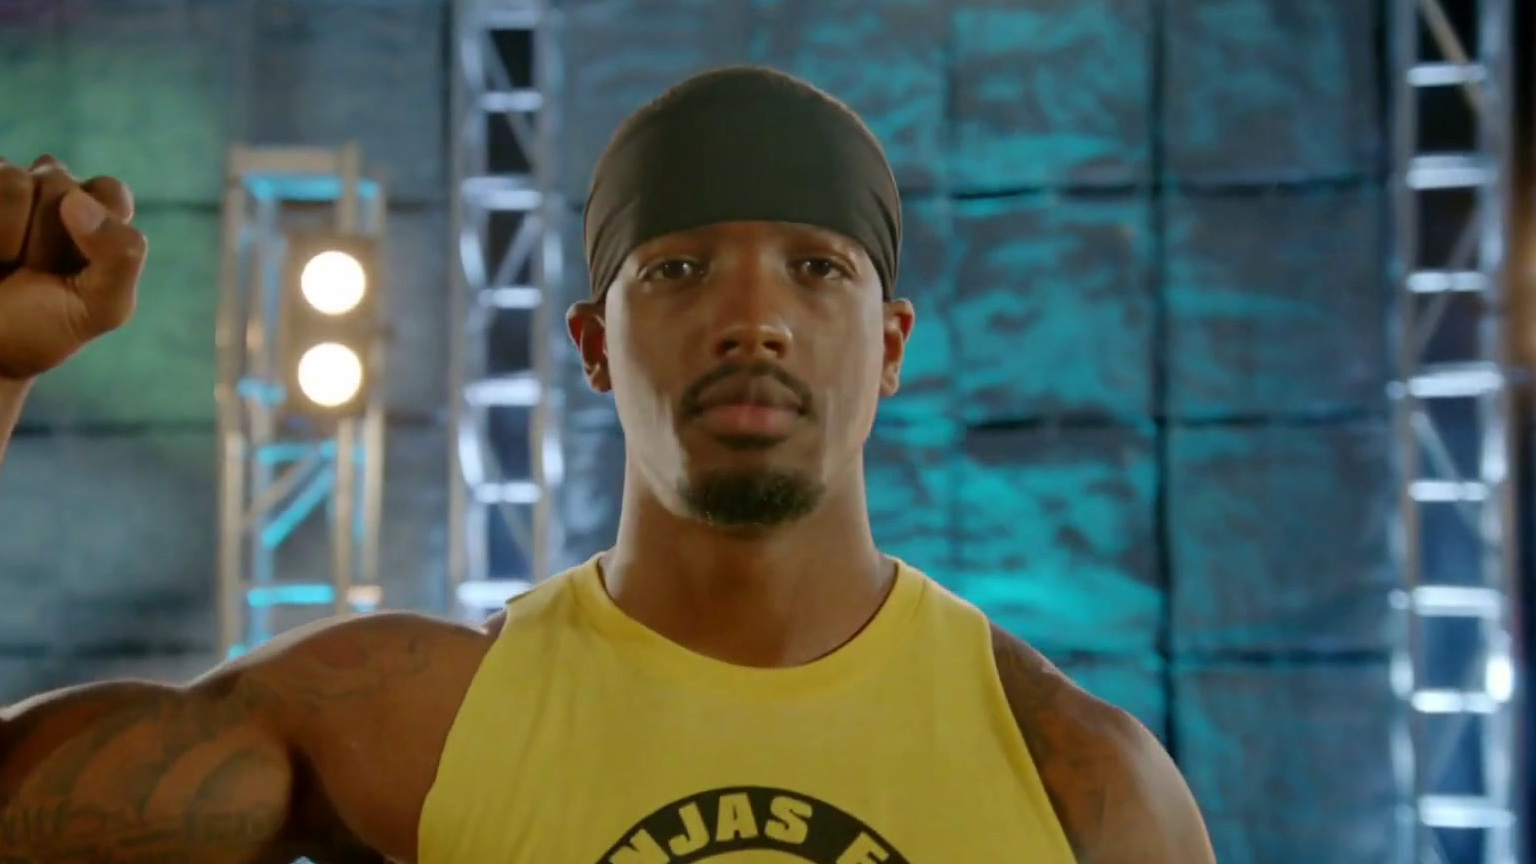 American Ninja Warrior: Jj Woods And A Movement For Racial Justice